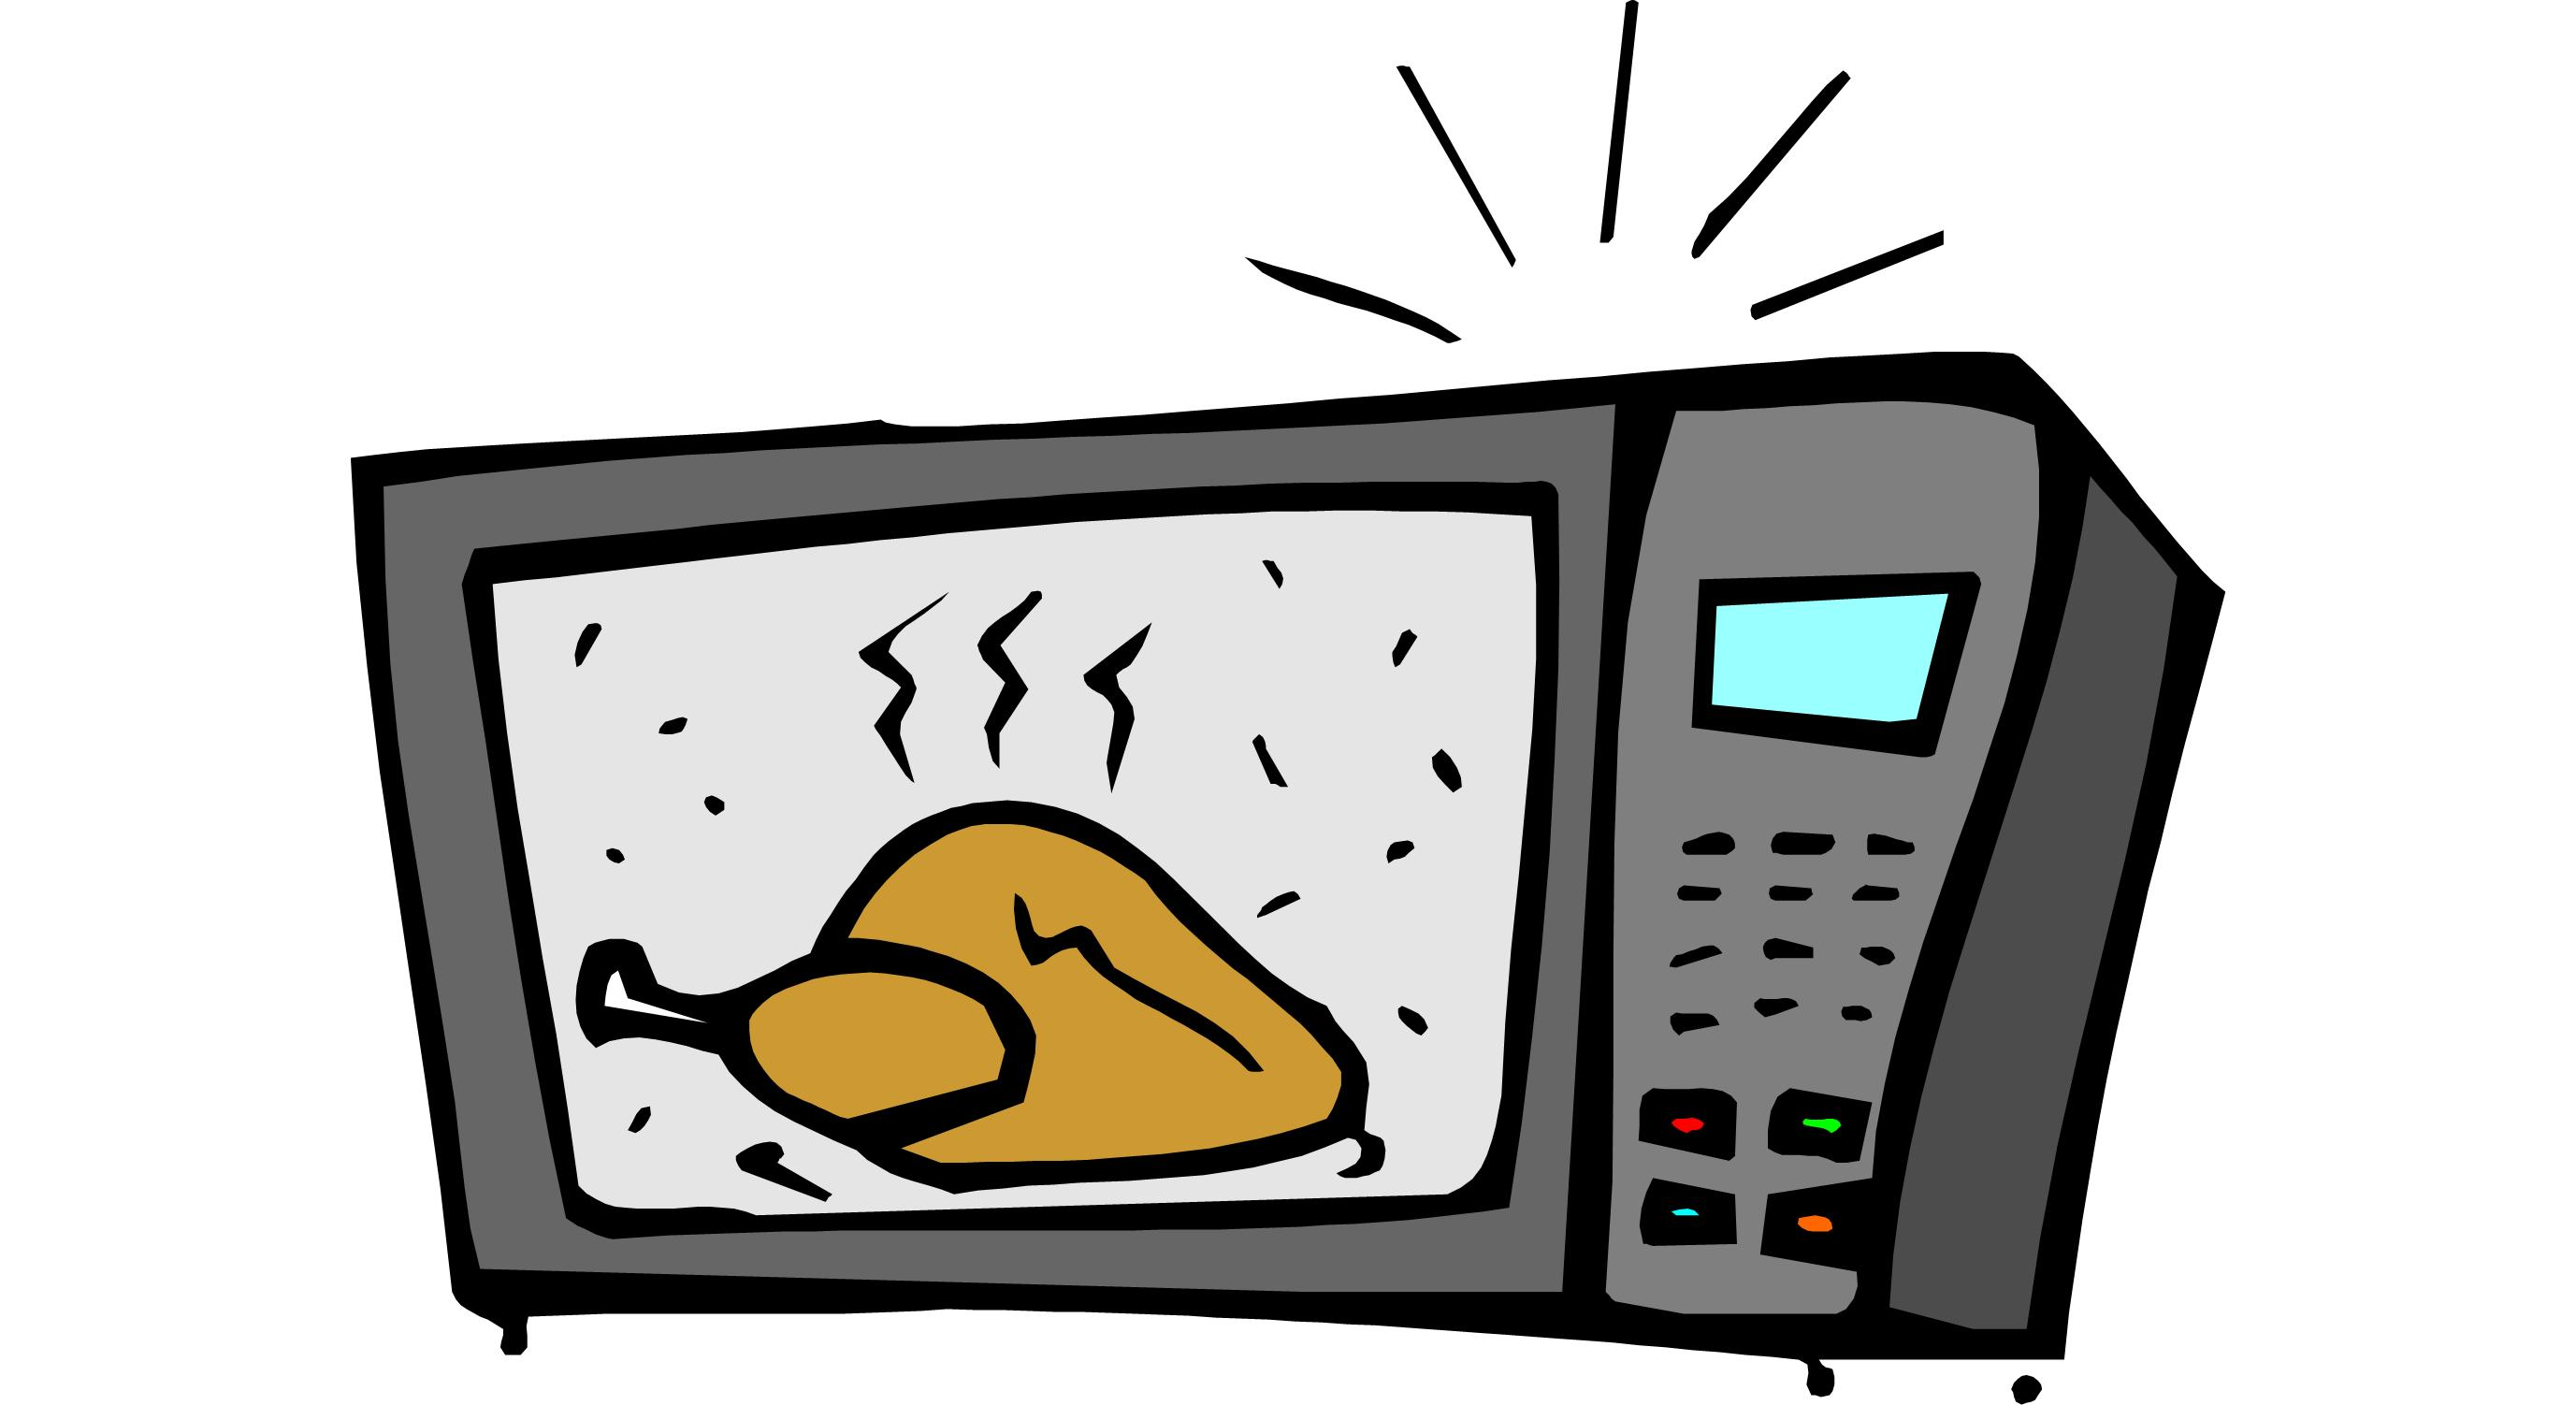 Microwave clipart free clipart images 2